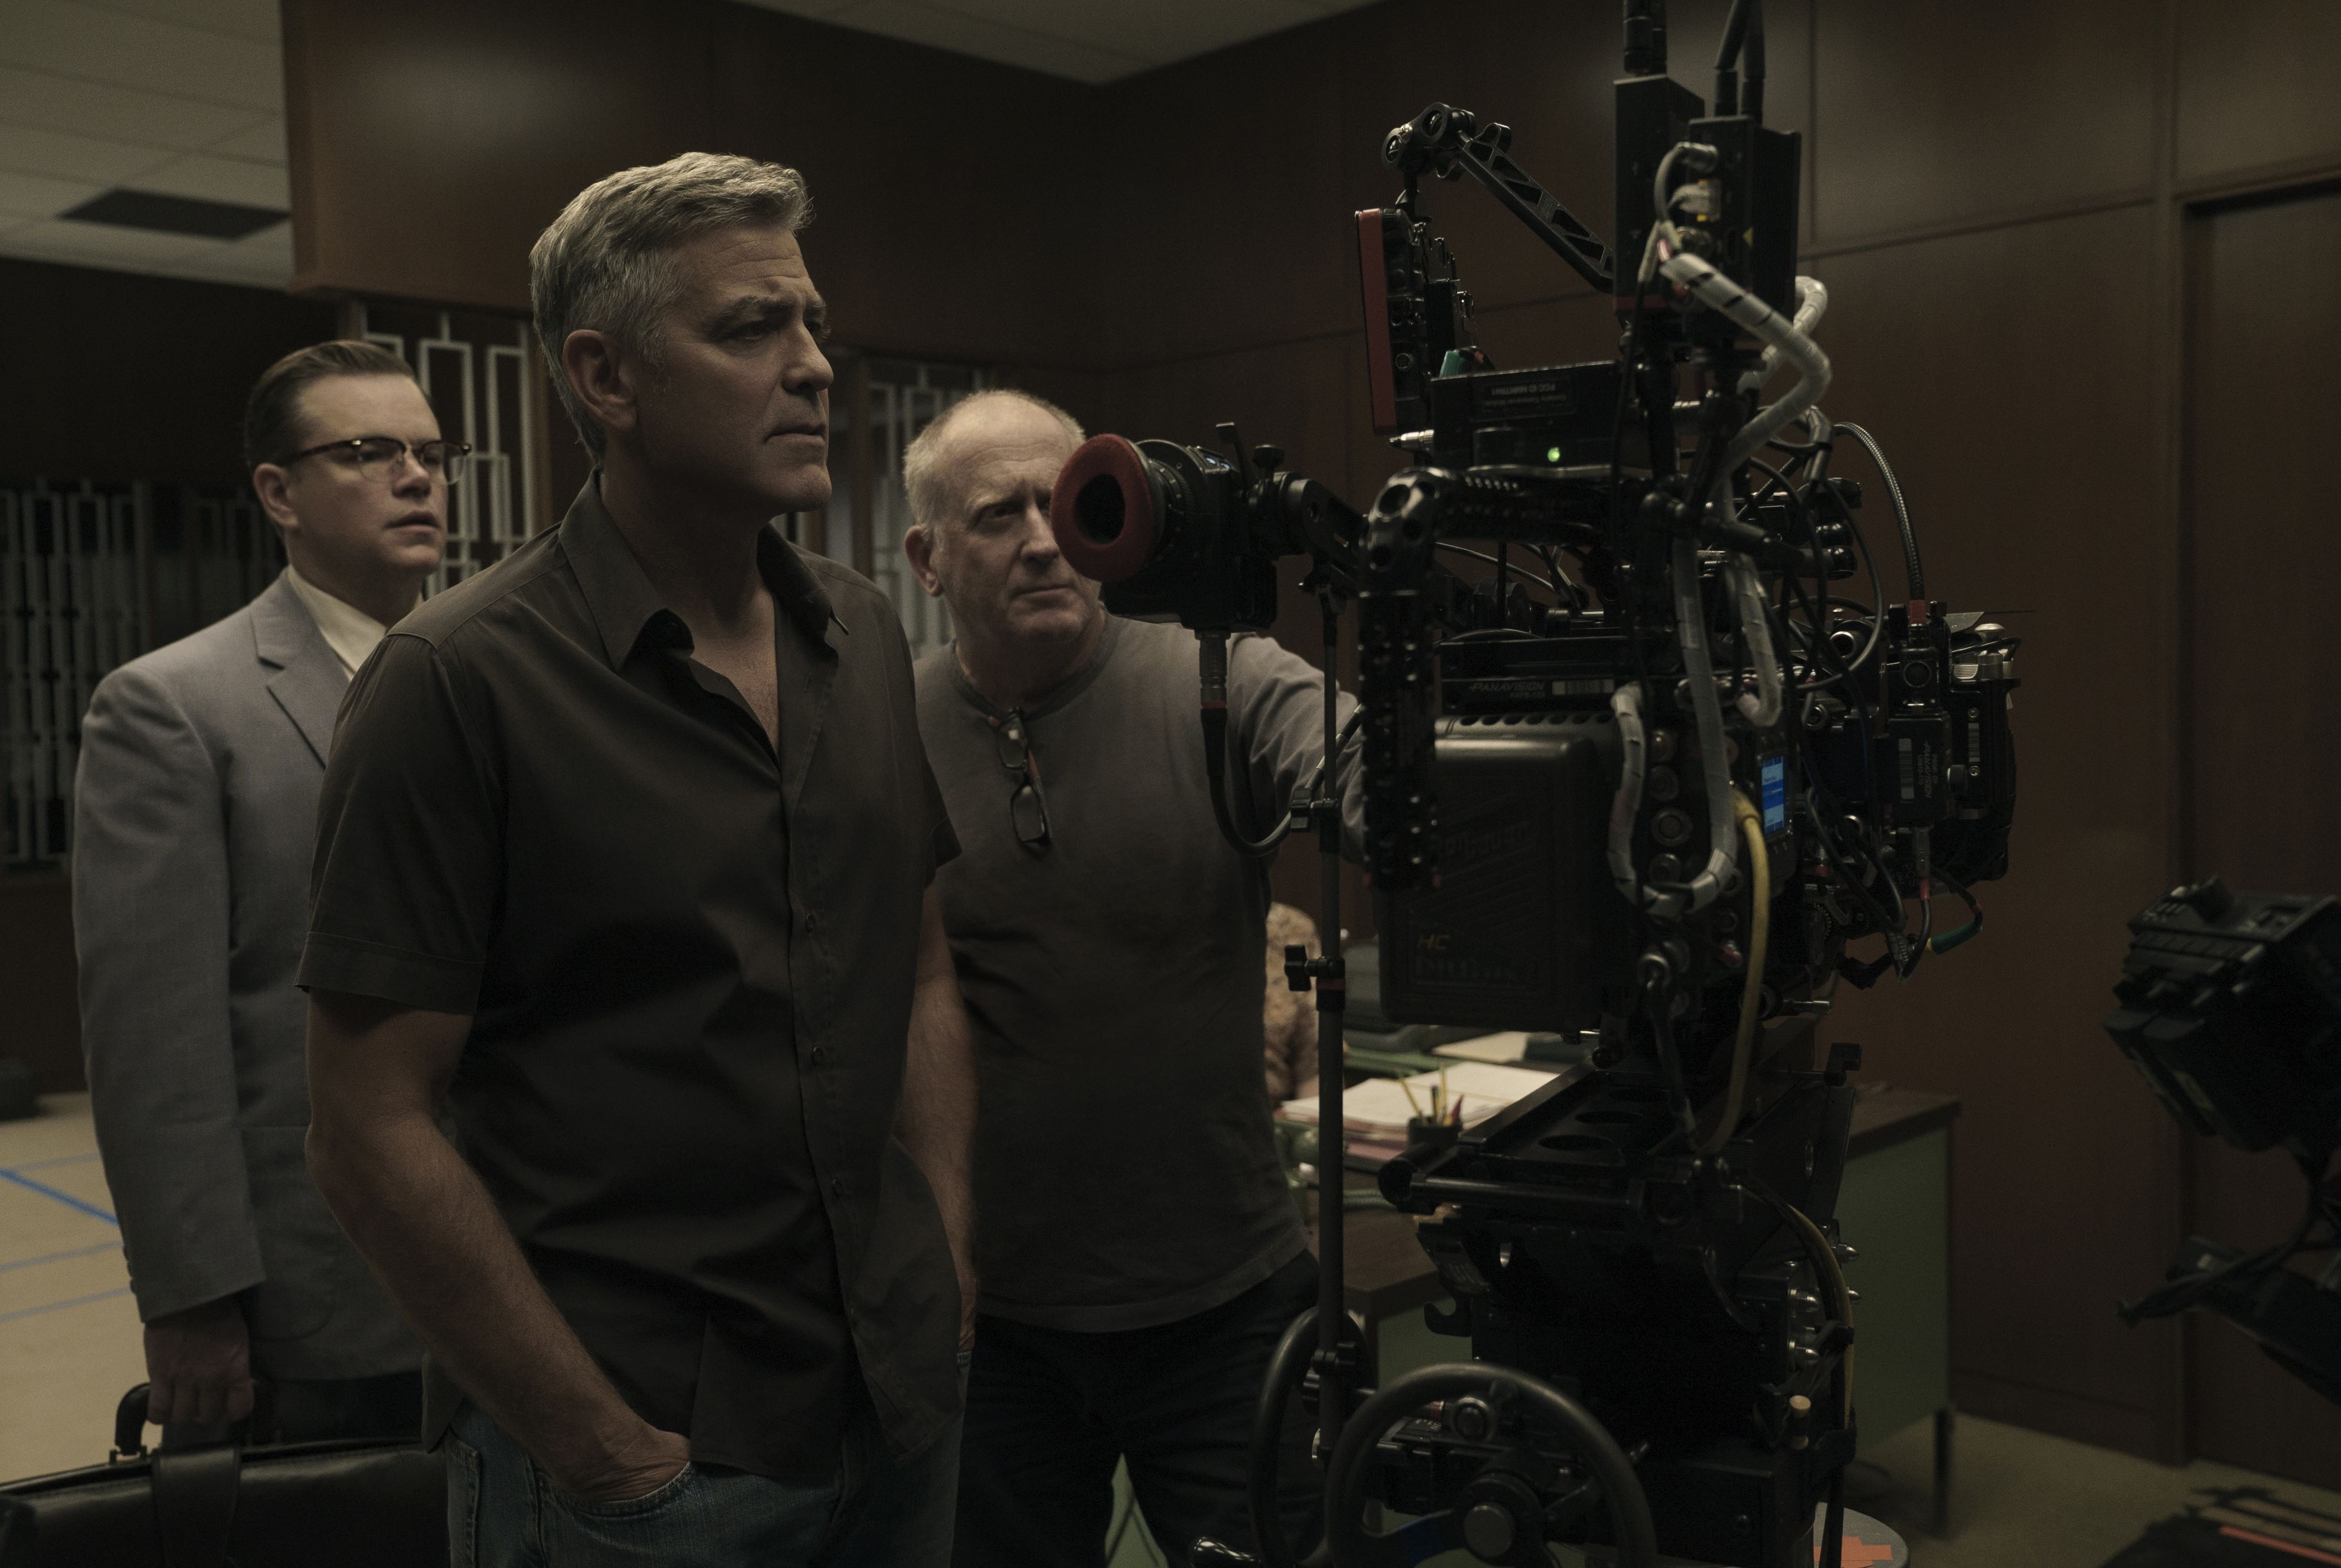 Left to right: Matt Damon, Director George Clooney and Cinematographer Robert Elswit on the set of SUBURBICON, from Paramount Pictures and Black Bear Pictures.